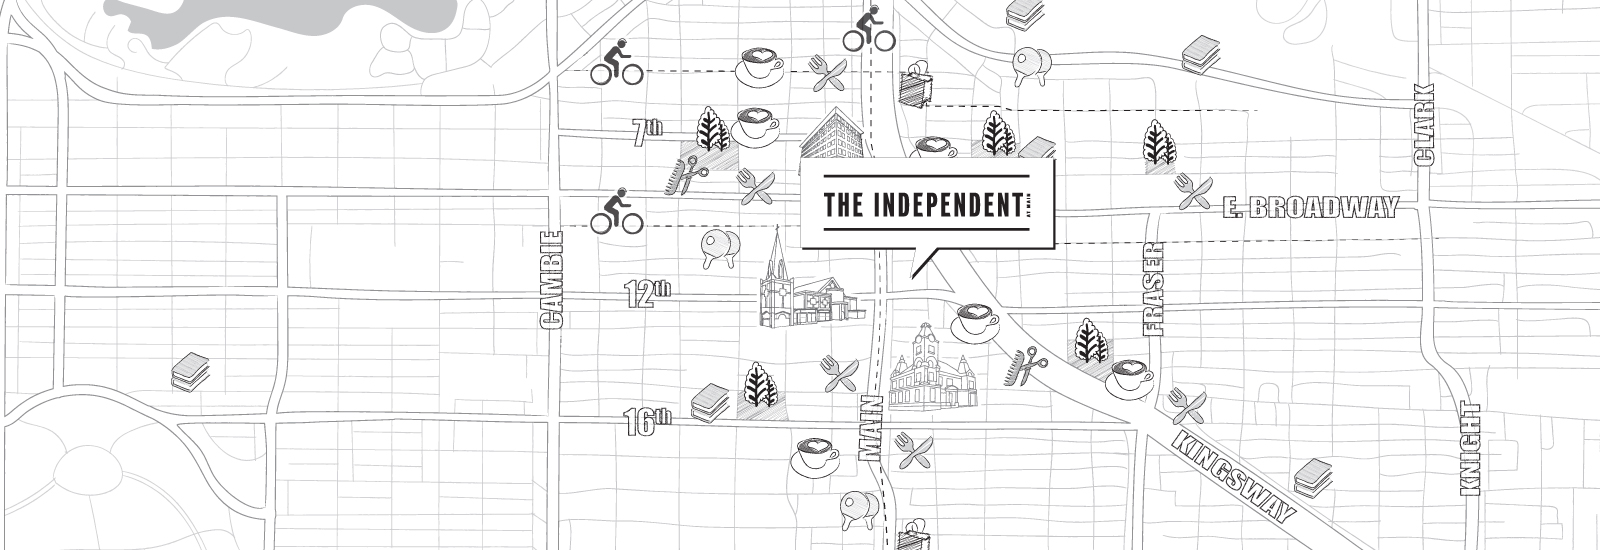 The Independent by Rize Mike Stewart